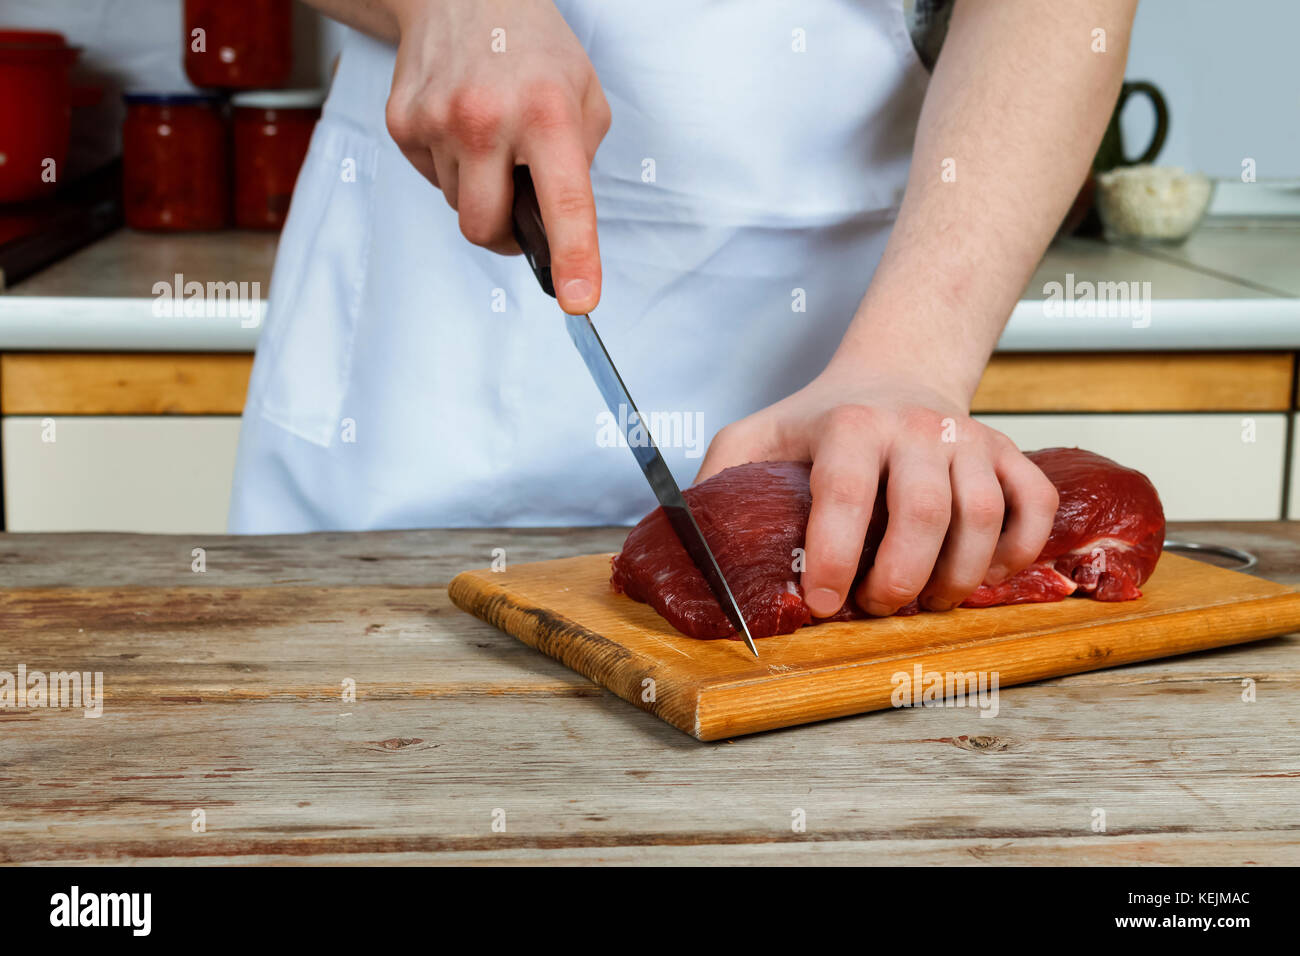 Butcher cutting pork meat on kitchen. man preparation Stock Photo